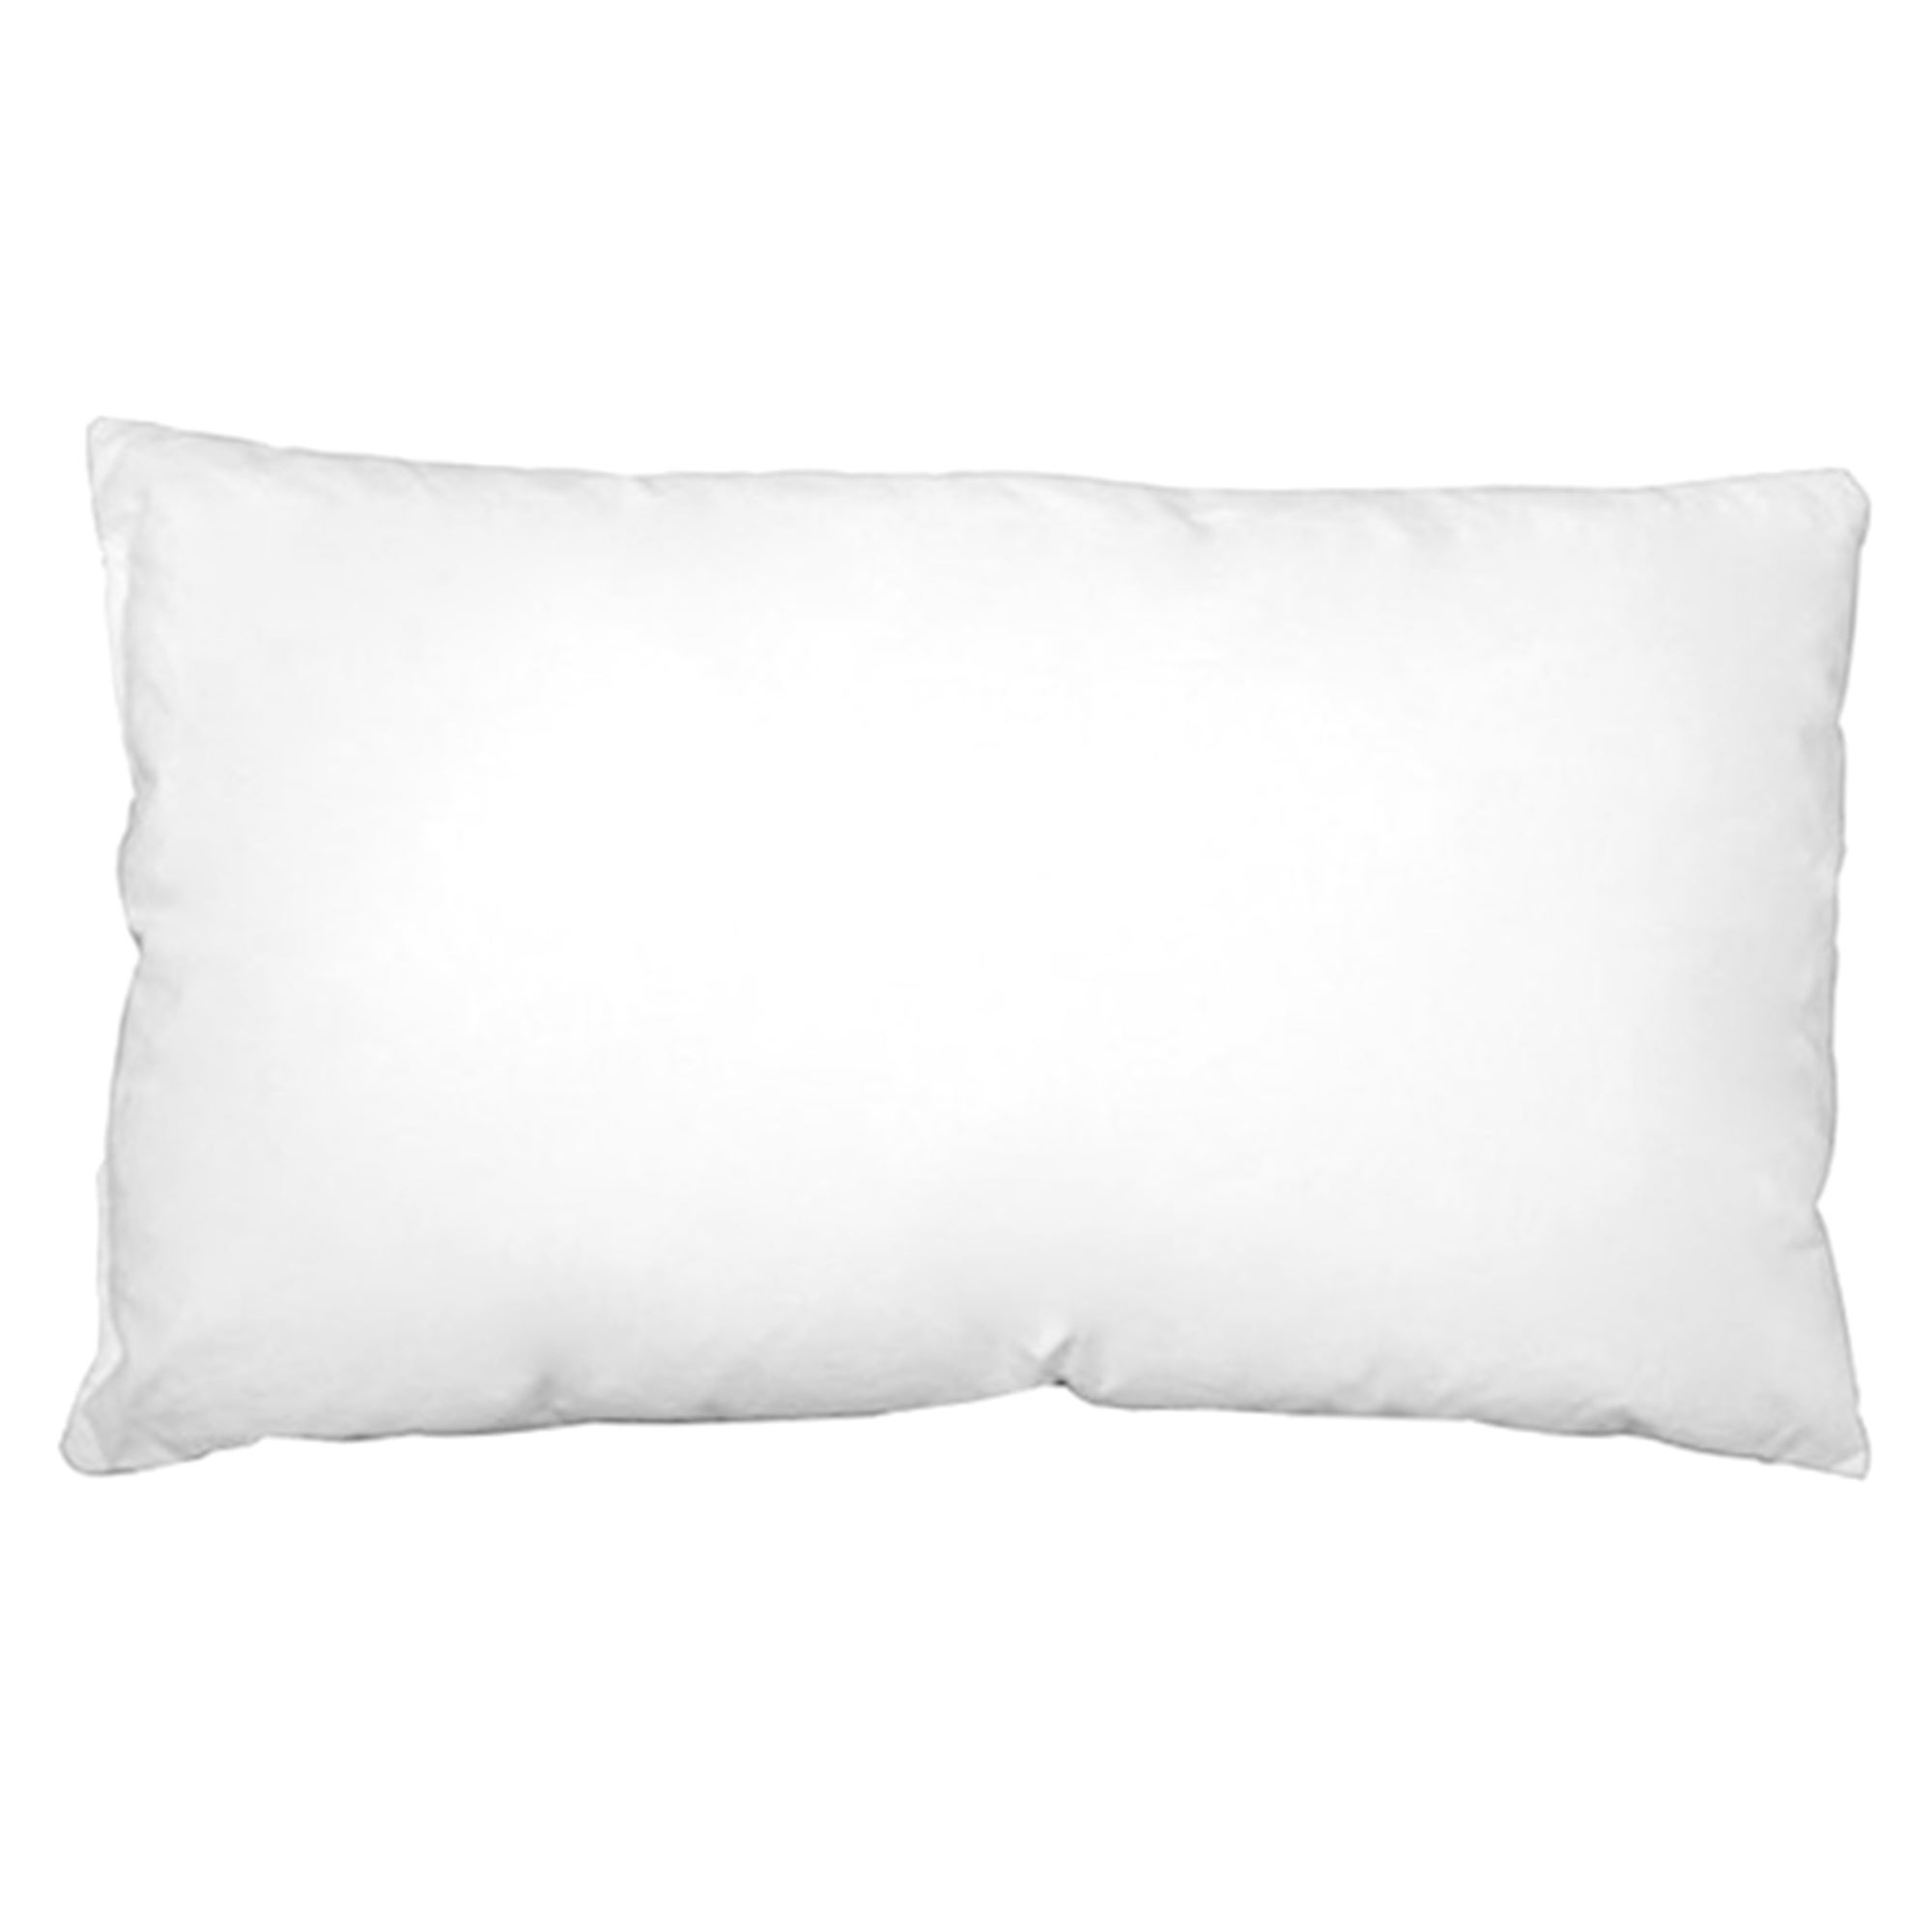 White Piped Boudoir Cushion Pad